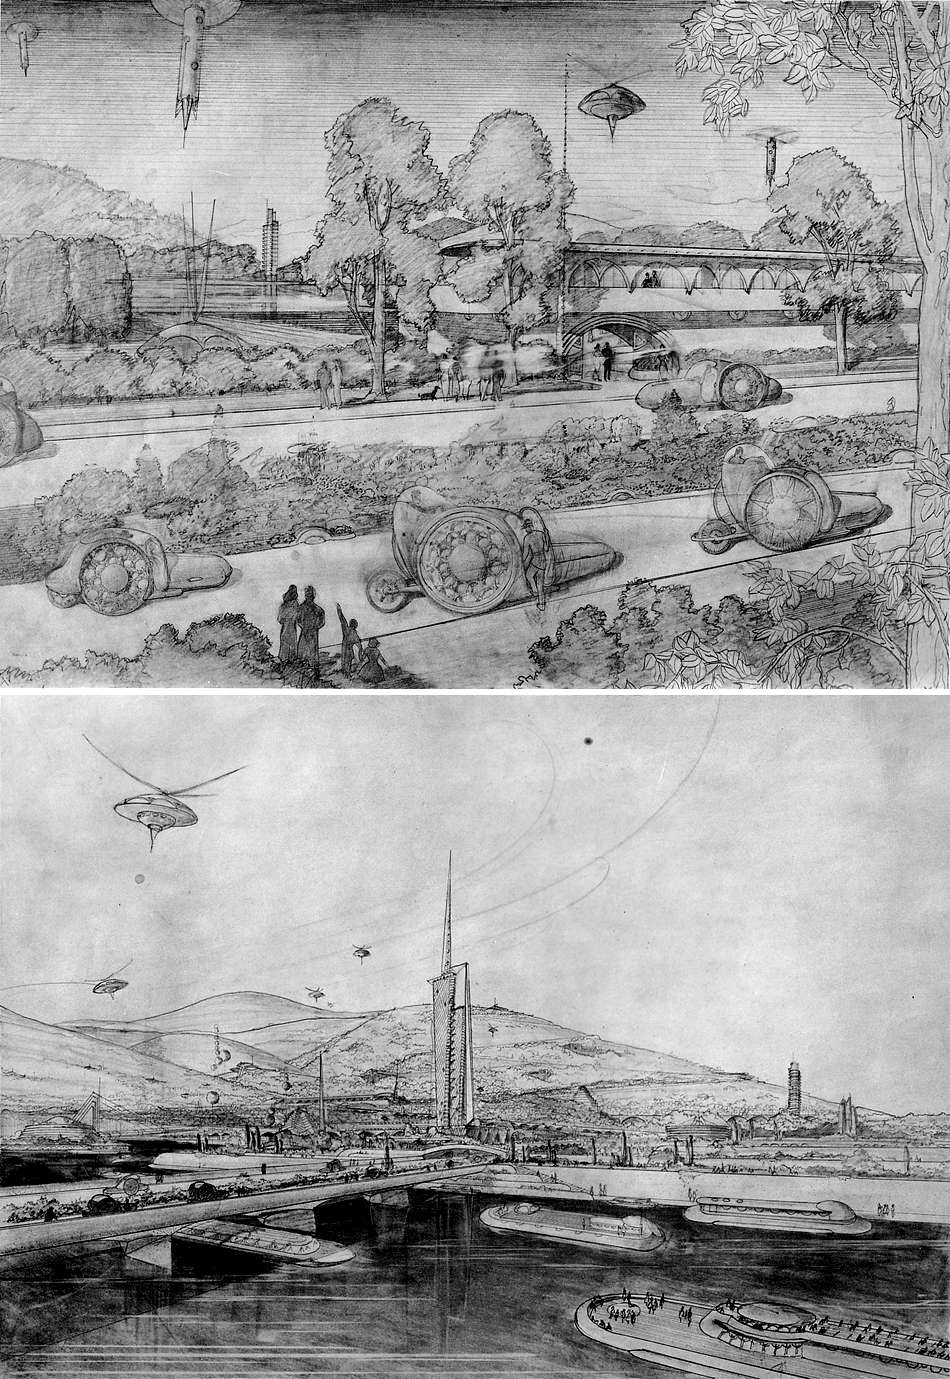 A comprehensive designer is interested in (and interested in designing) Everything! Here are two scenes from Frank Lloyd Wright's Broadacre City proposal—these showing examples of his flying saucer-esque personal helicopters, as well as his curious and intriguing designs for various types of roadsters and ships. Image    courtesy of Wikipedia   .